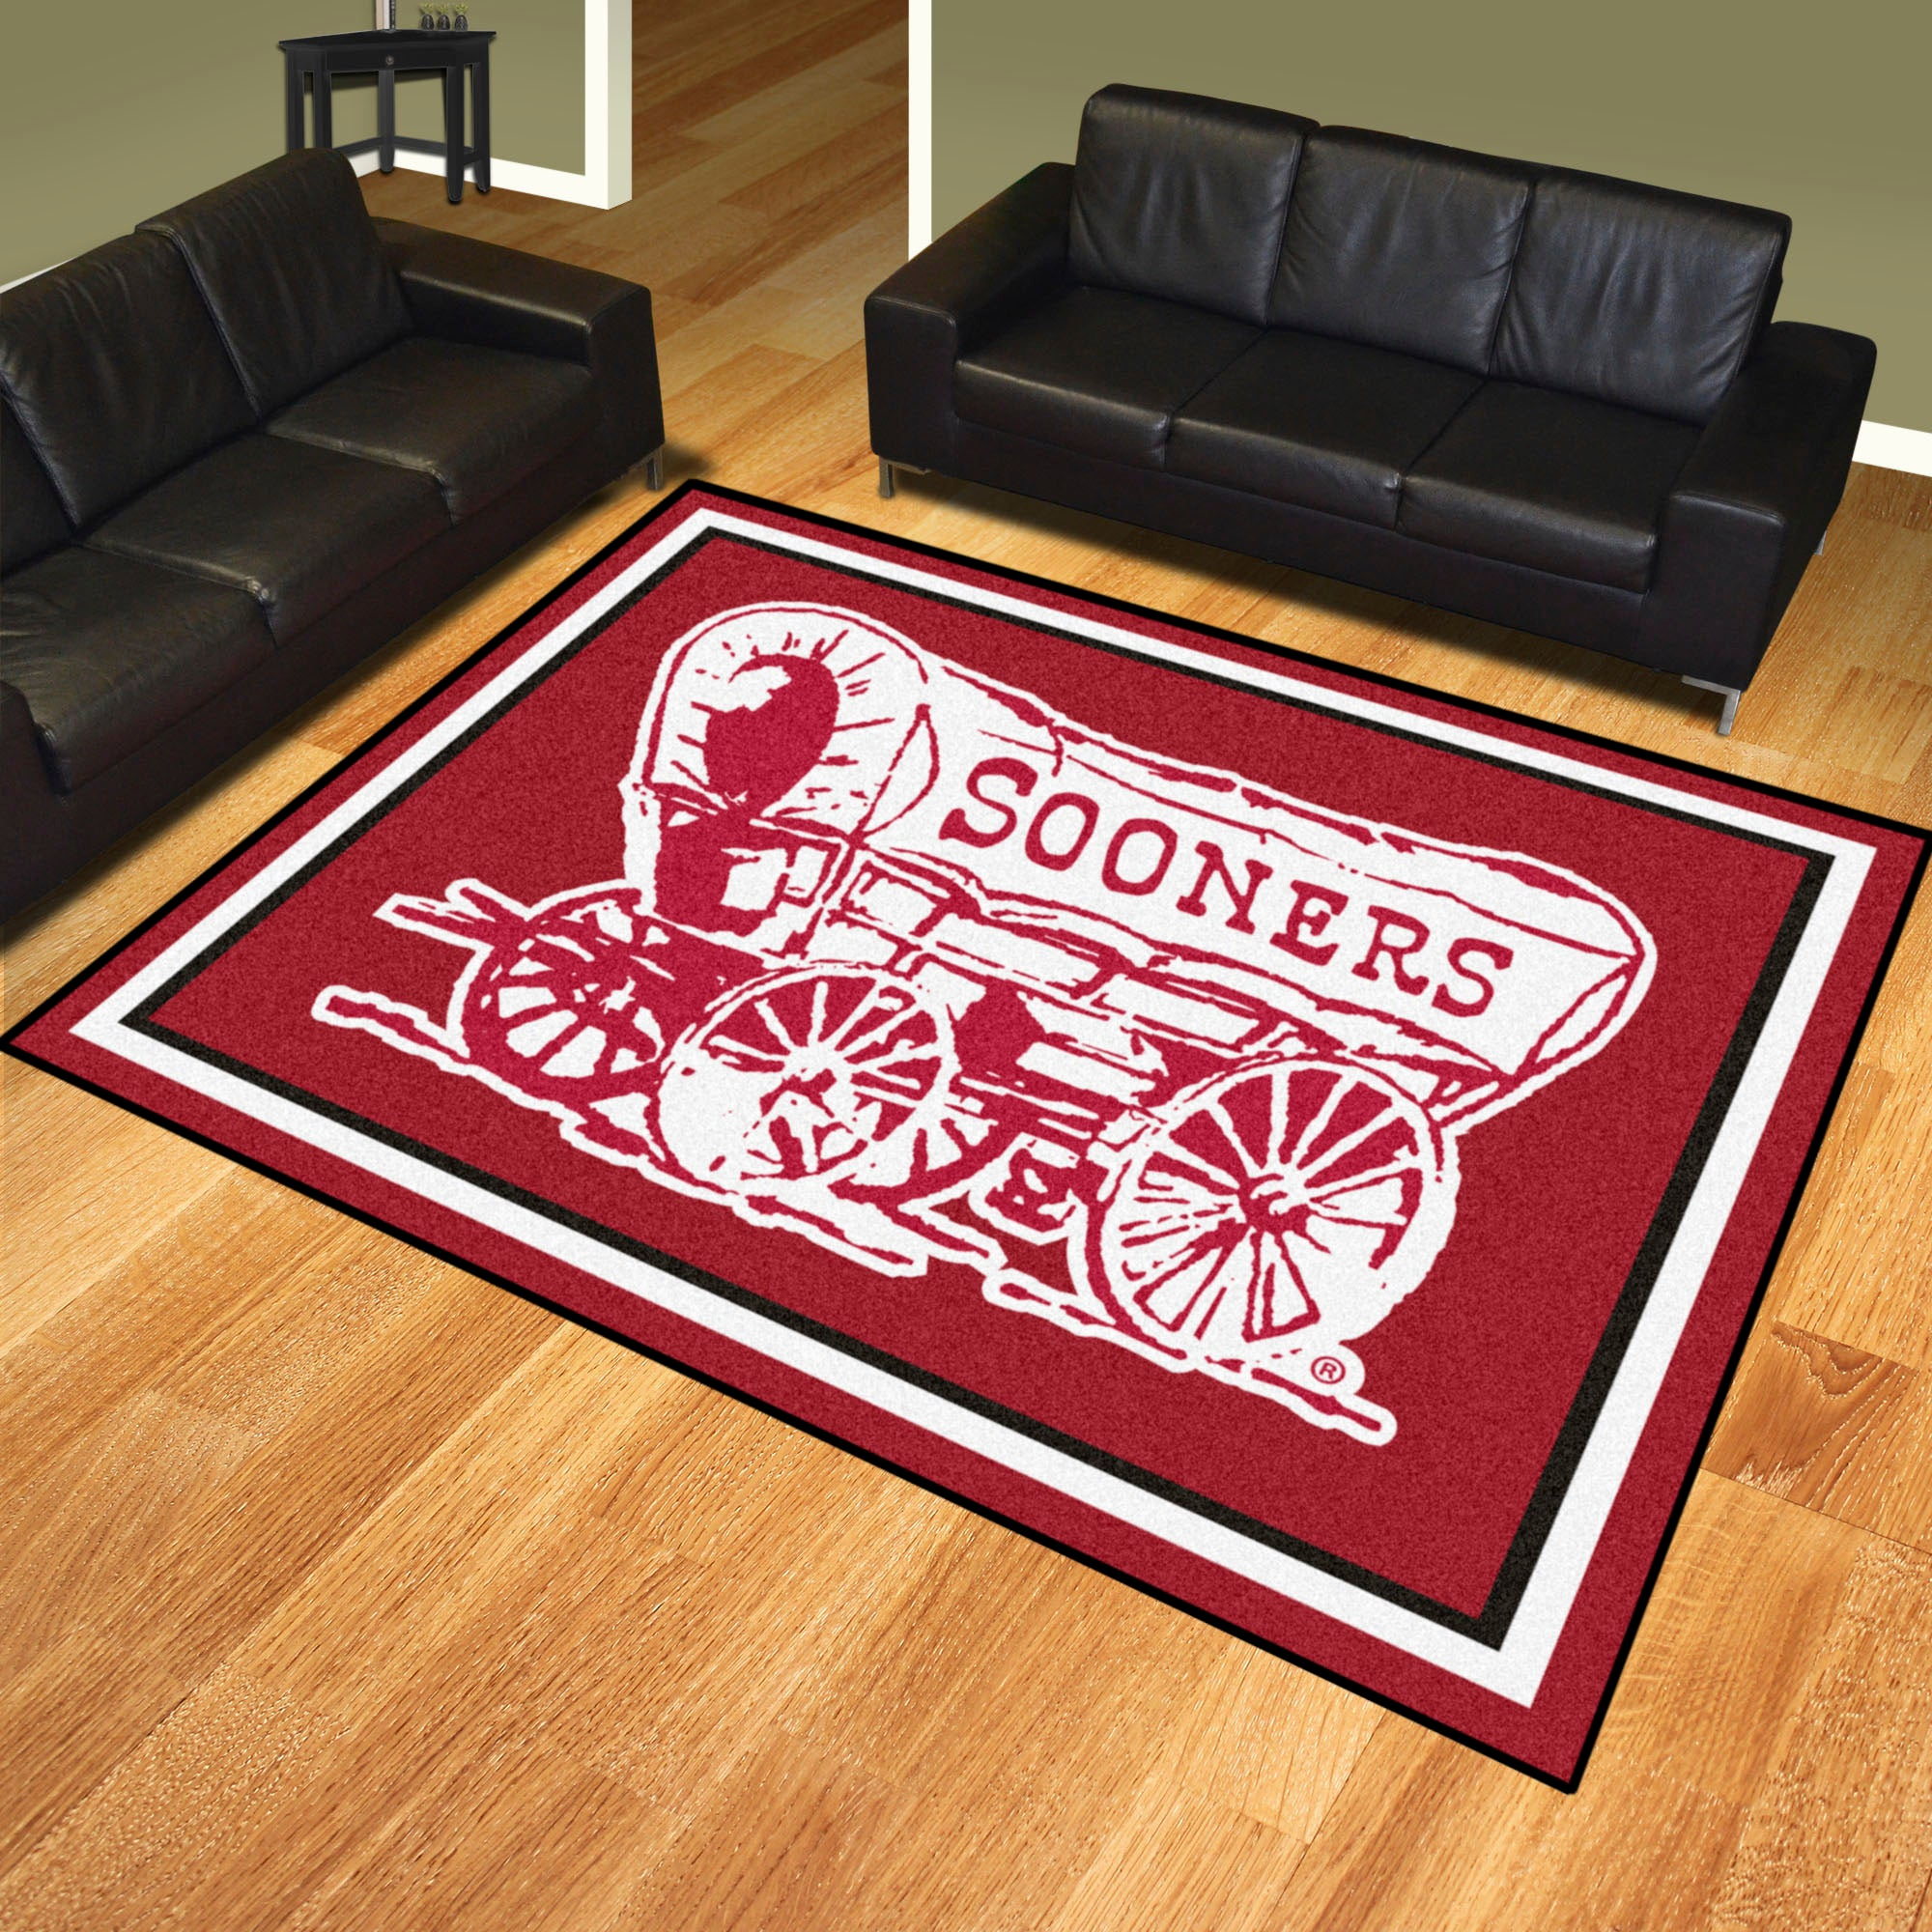 University of Oklahoma Sooners Wagon Plush Rug  College Area Rug - Fan Rugs